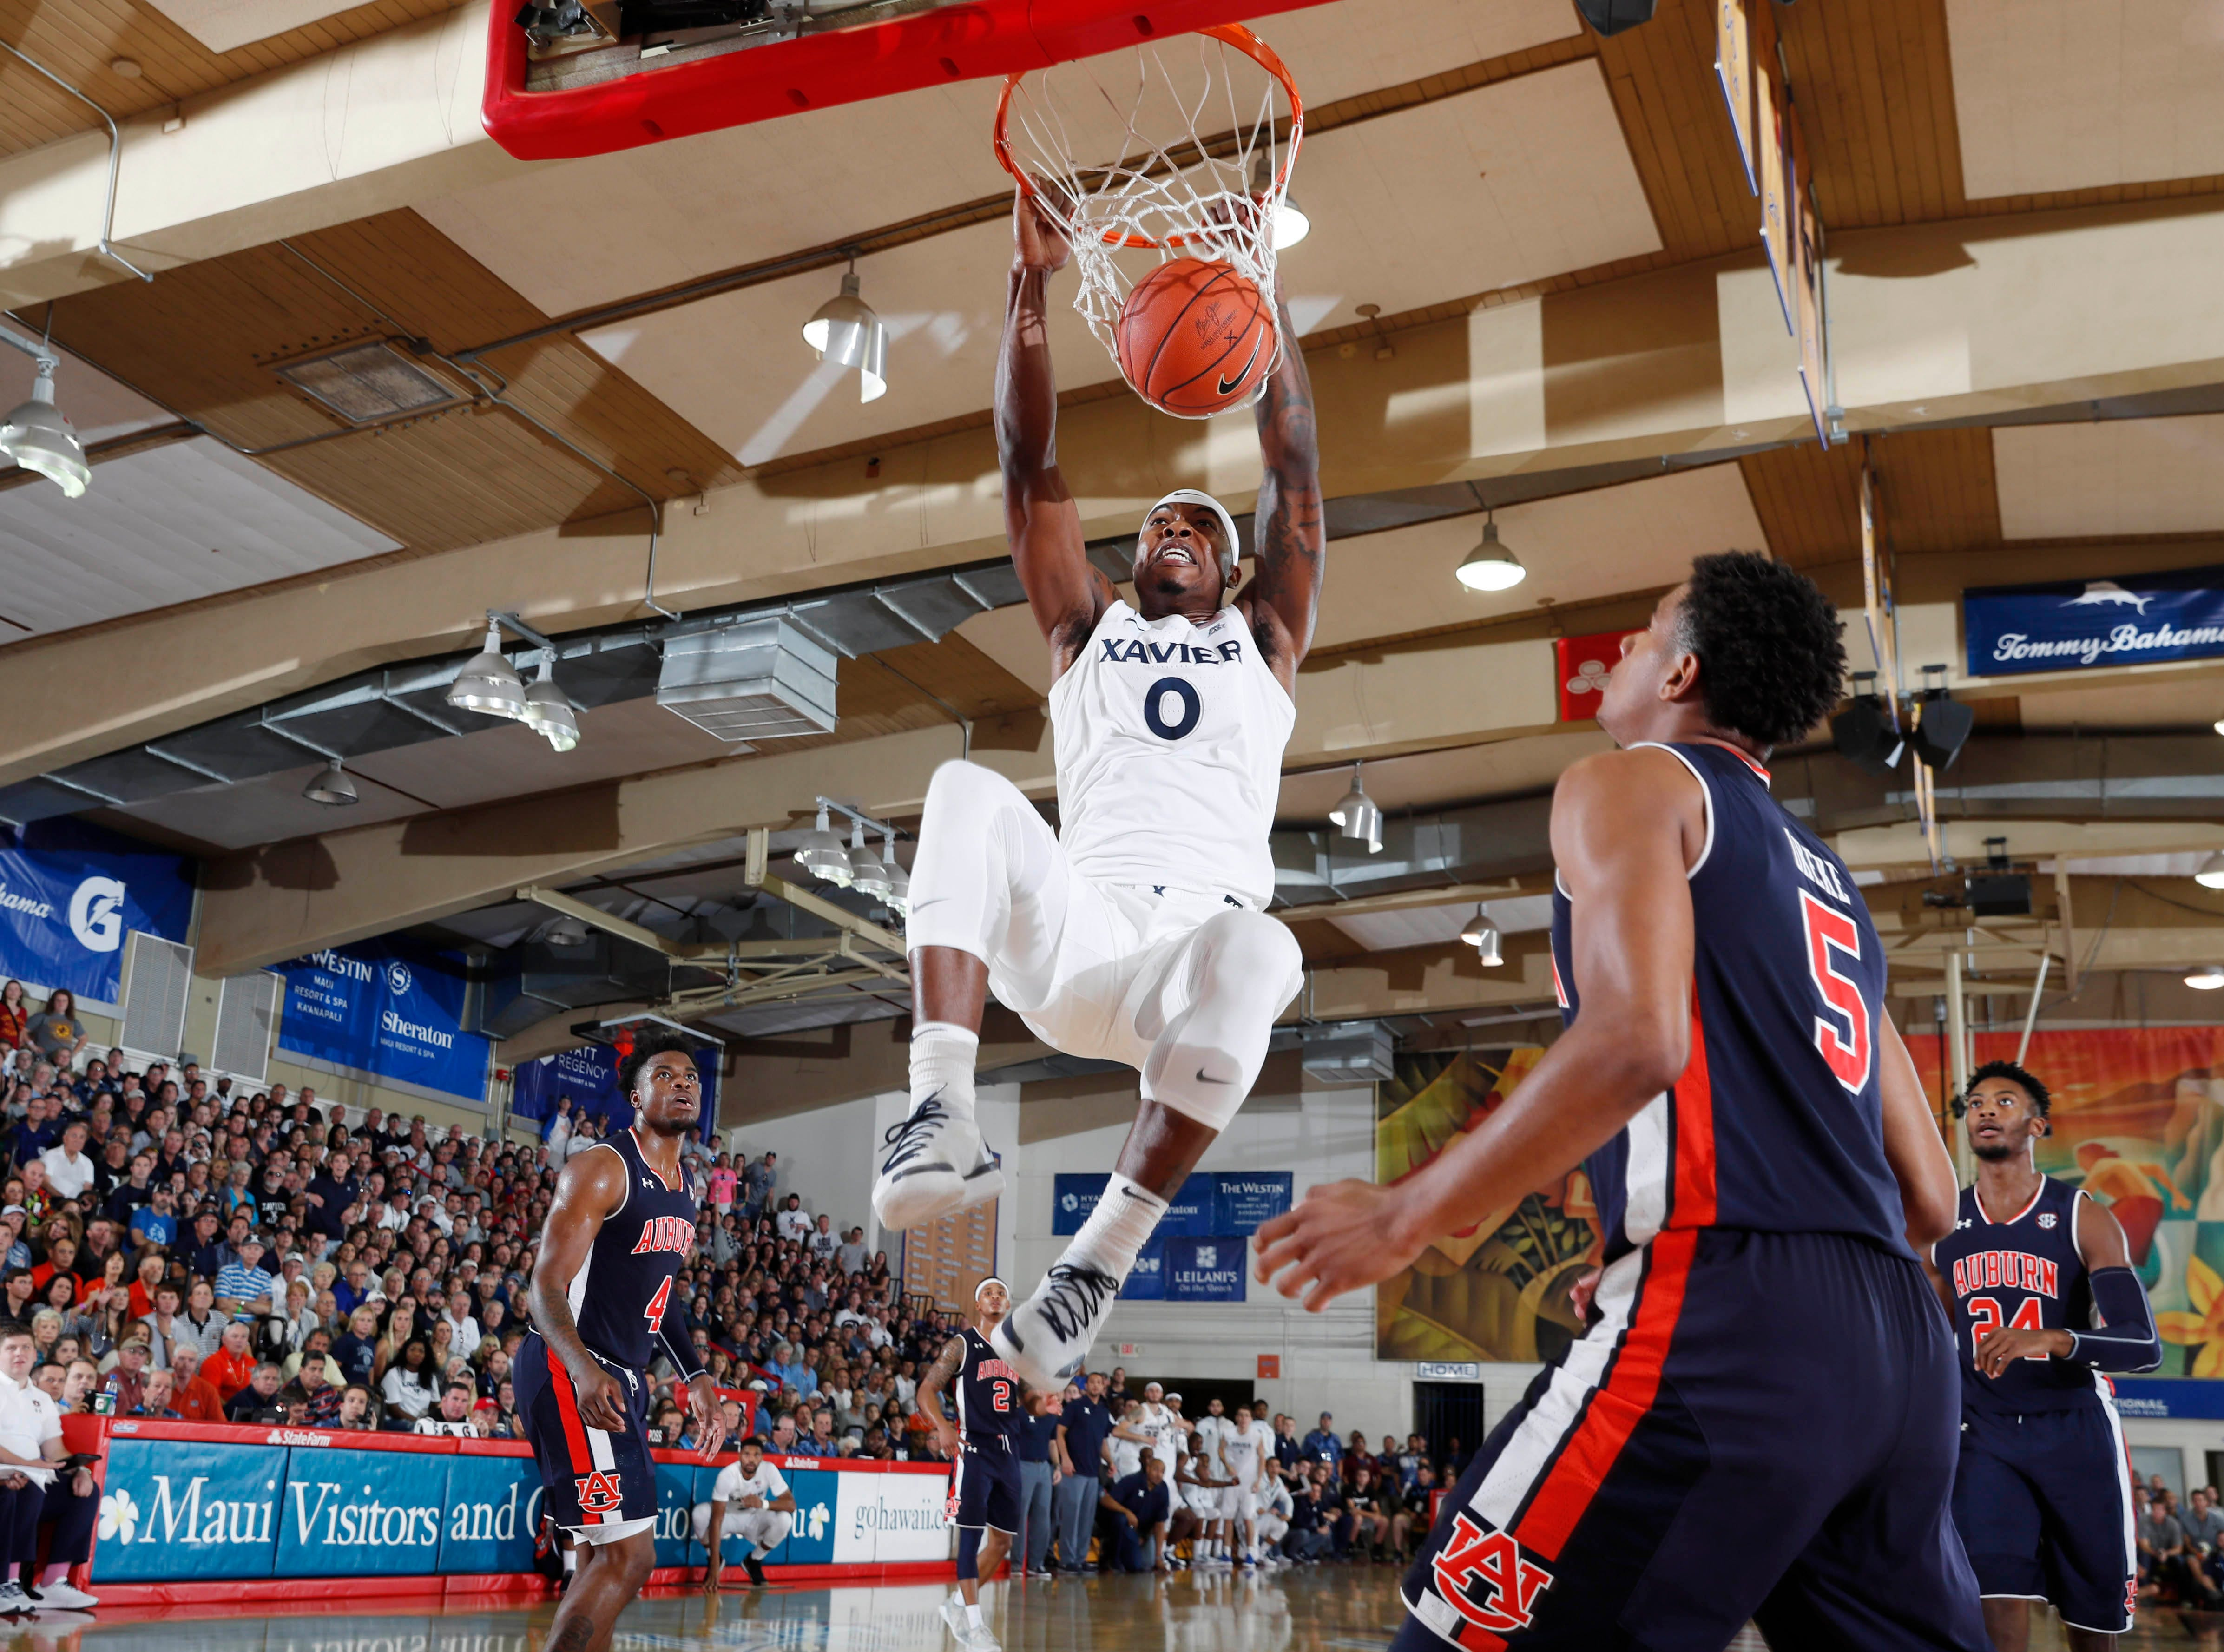 Nov 19, 2018; Lahaina, HI, USA; Xavier Musketeers forward Tyrique Jones (0) dunks against Auburn Tigers forward Chuma Okeke (5) in the first half during the first round games of the Maui Jim Maui Invitational at Lahaina Civic Center. Mandatory Credit: Brian Spurlock-USA TODAY Sports